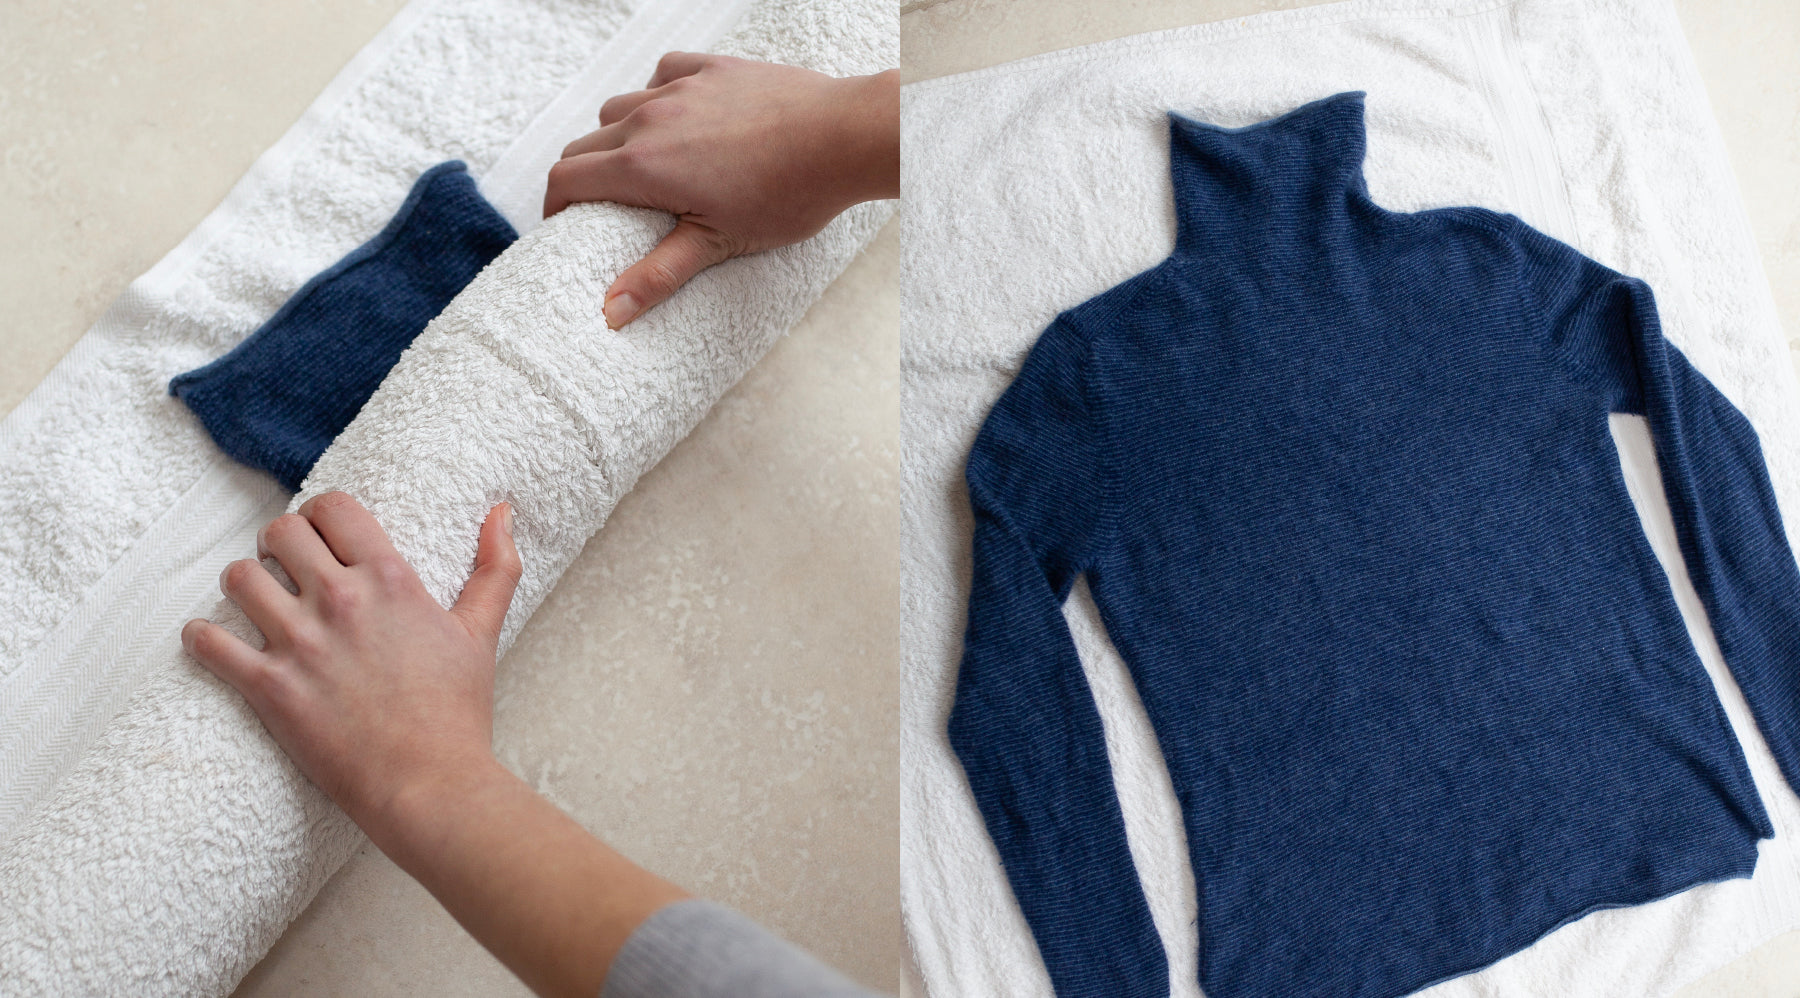 Les Cent Ciels navy jumper layed flat over a towel being unrolled to rinse excess water